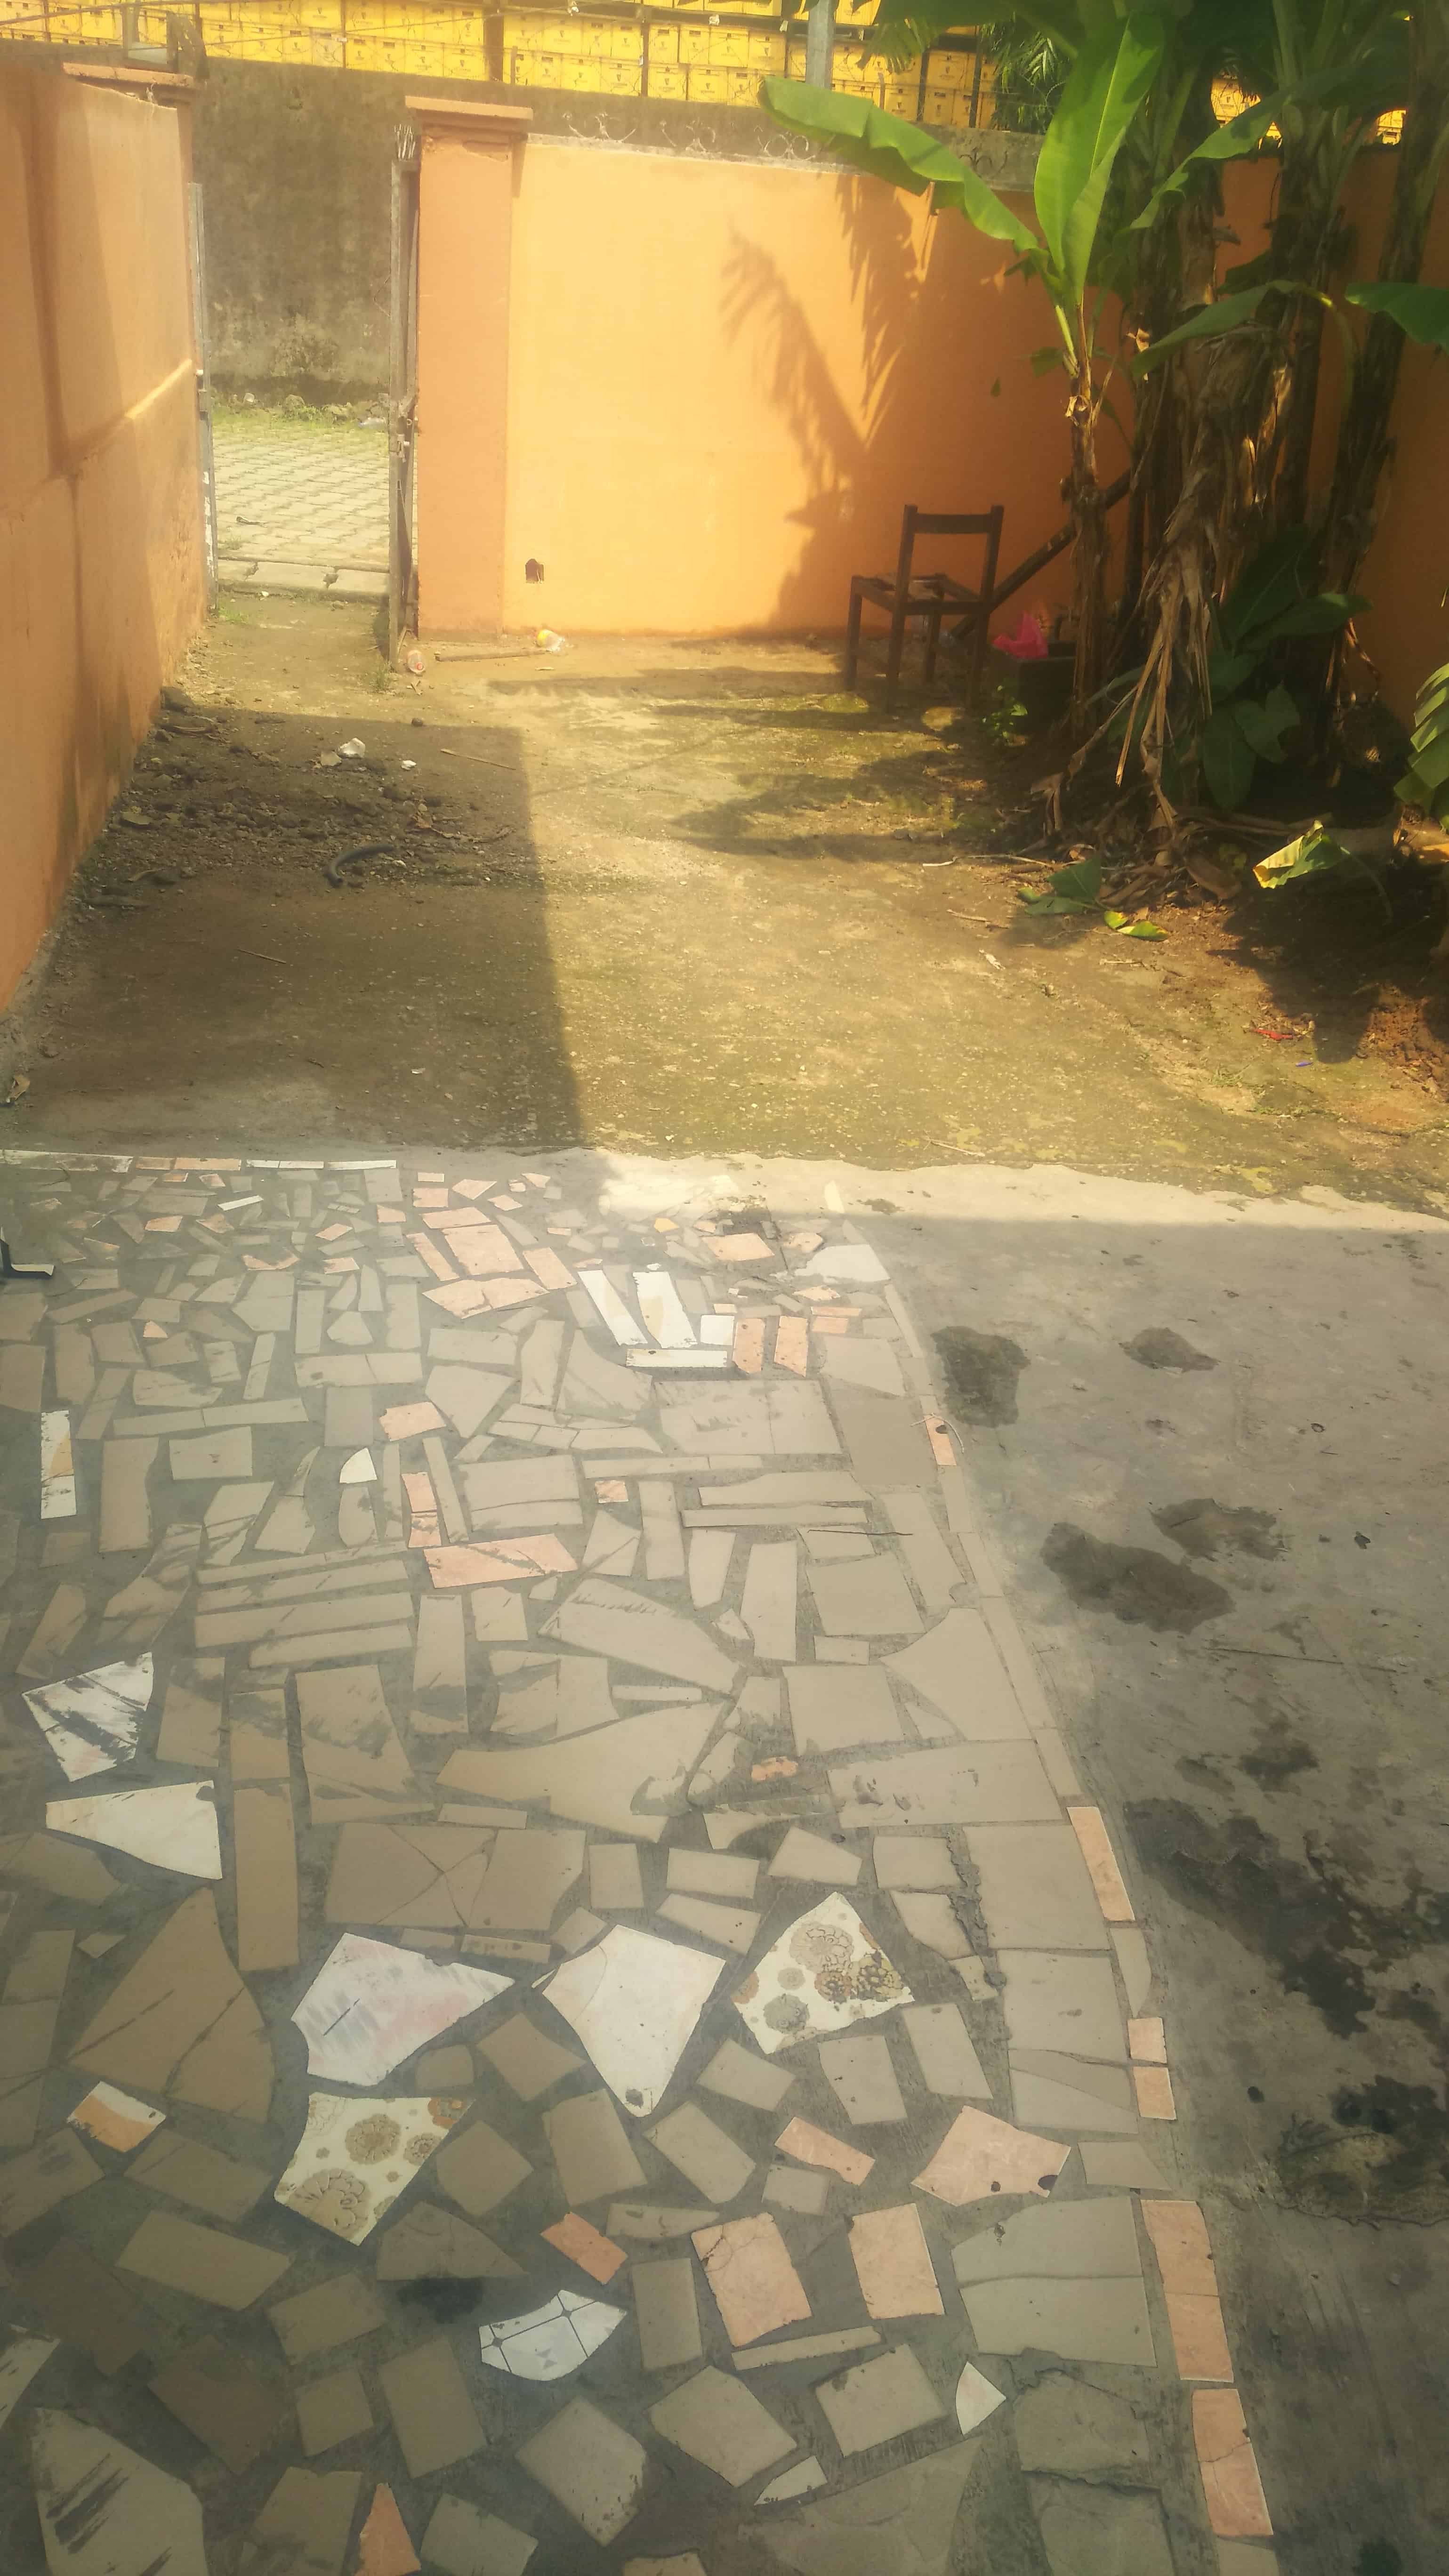 Apartment to rent - Douala, Ndoghem, Mobile Guiness - 1 living room(s), 1 bedroom(s), 1 bathroom(s) - 55 000 FCFA / month